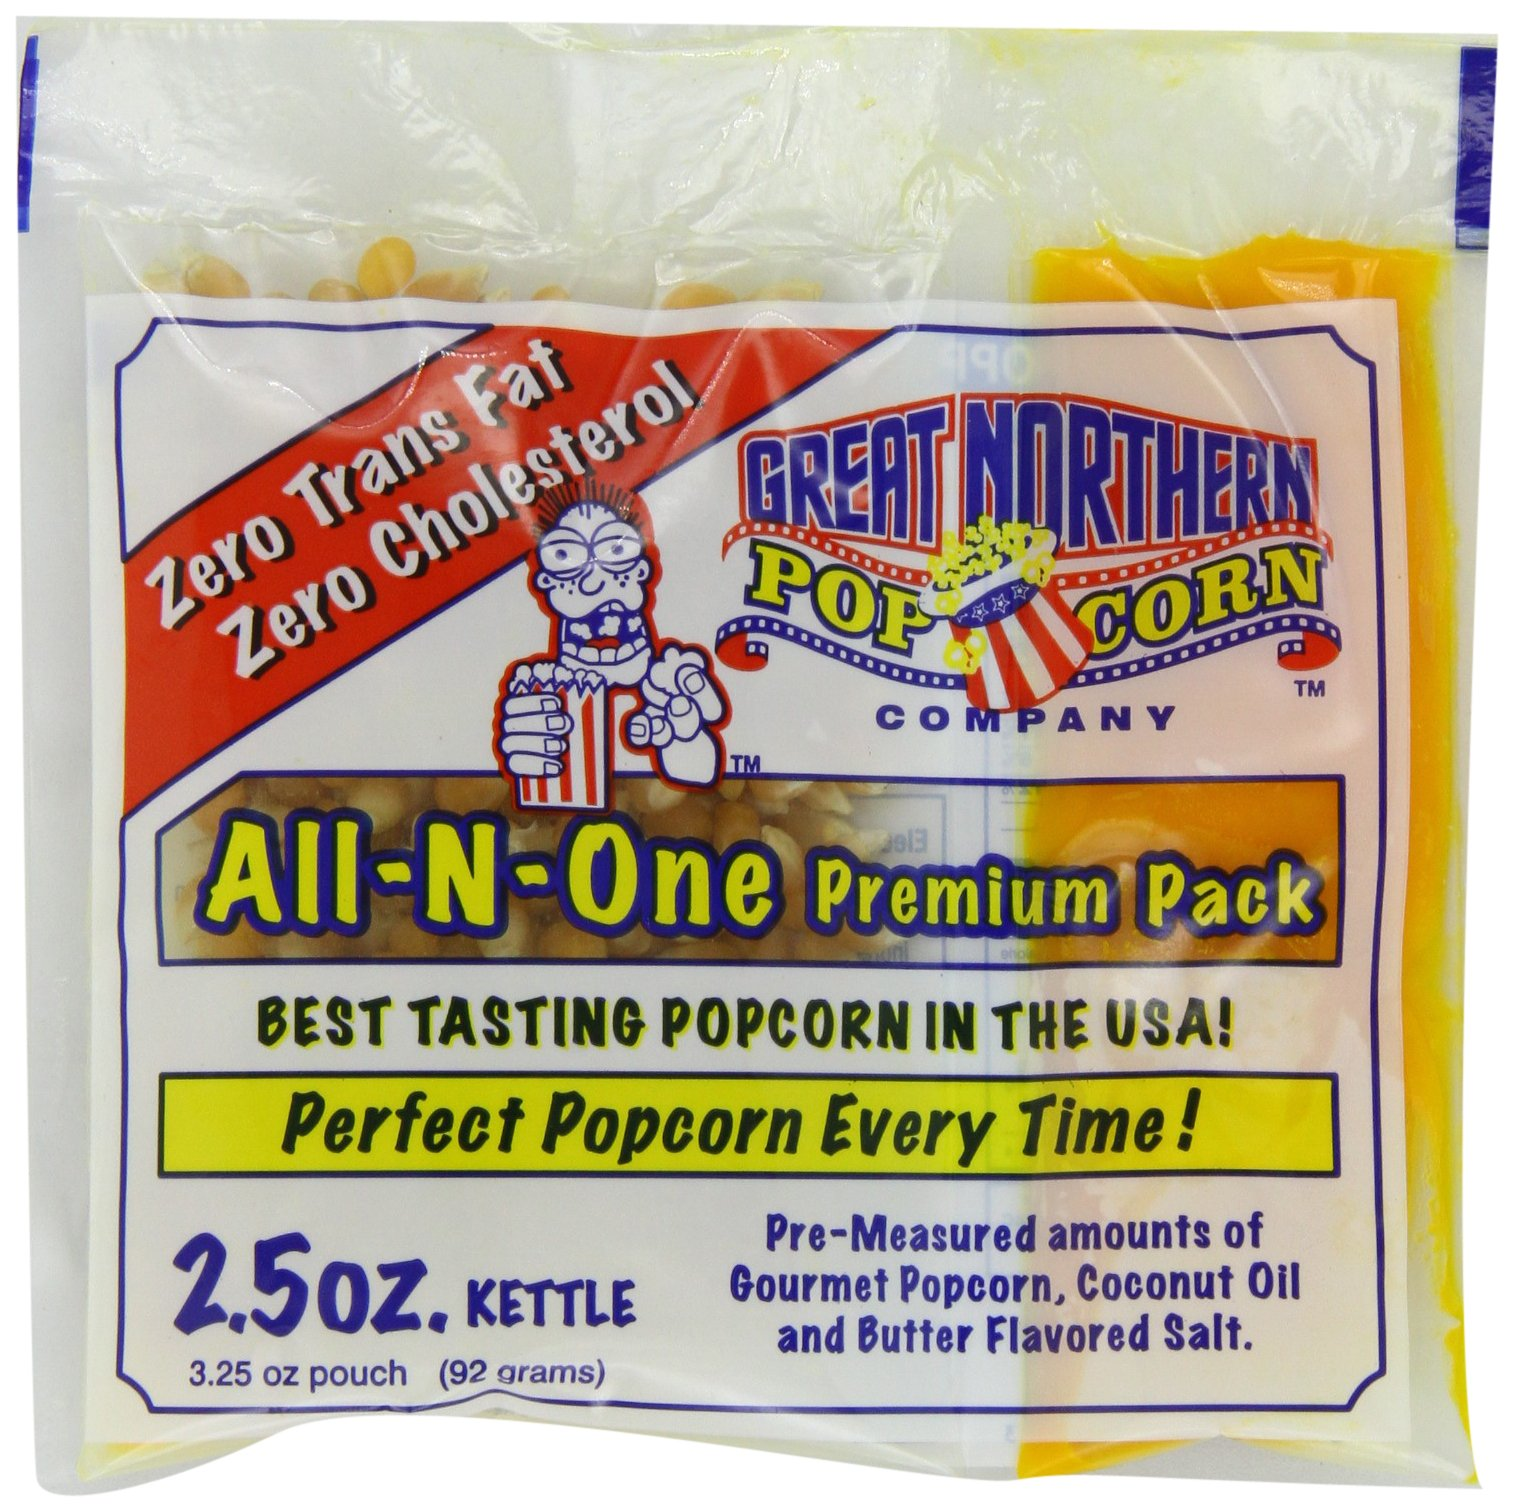 4099 Great Northern Popcorn Premium 2.5 Ounce Popcorn Portion Packs, Case of 24